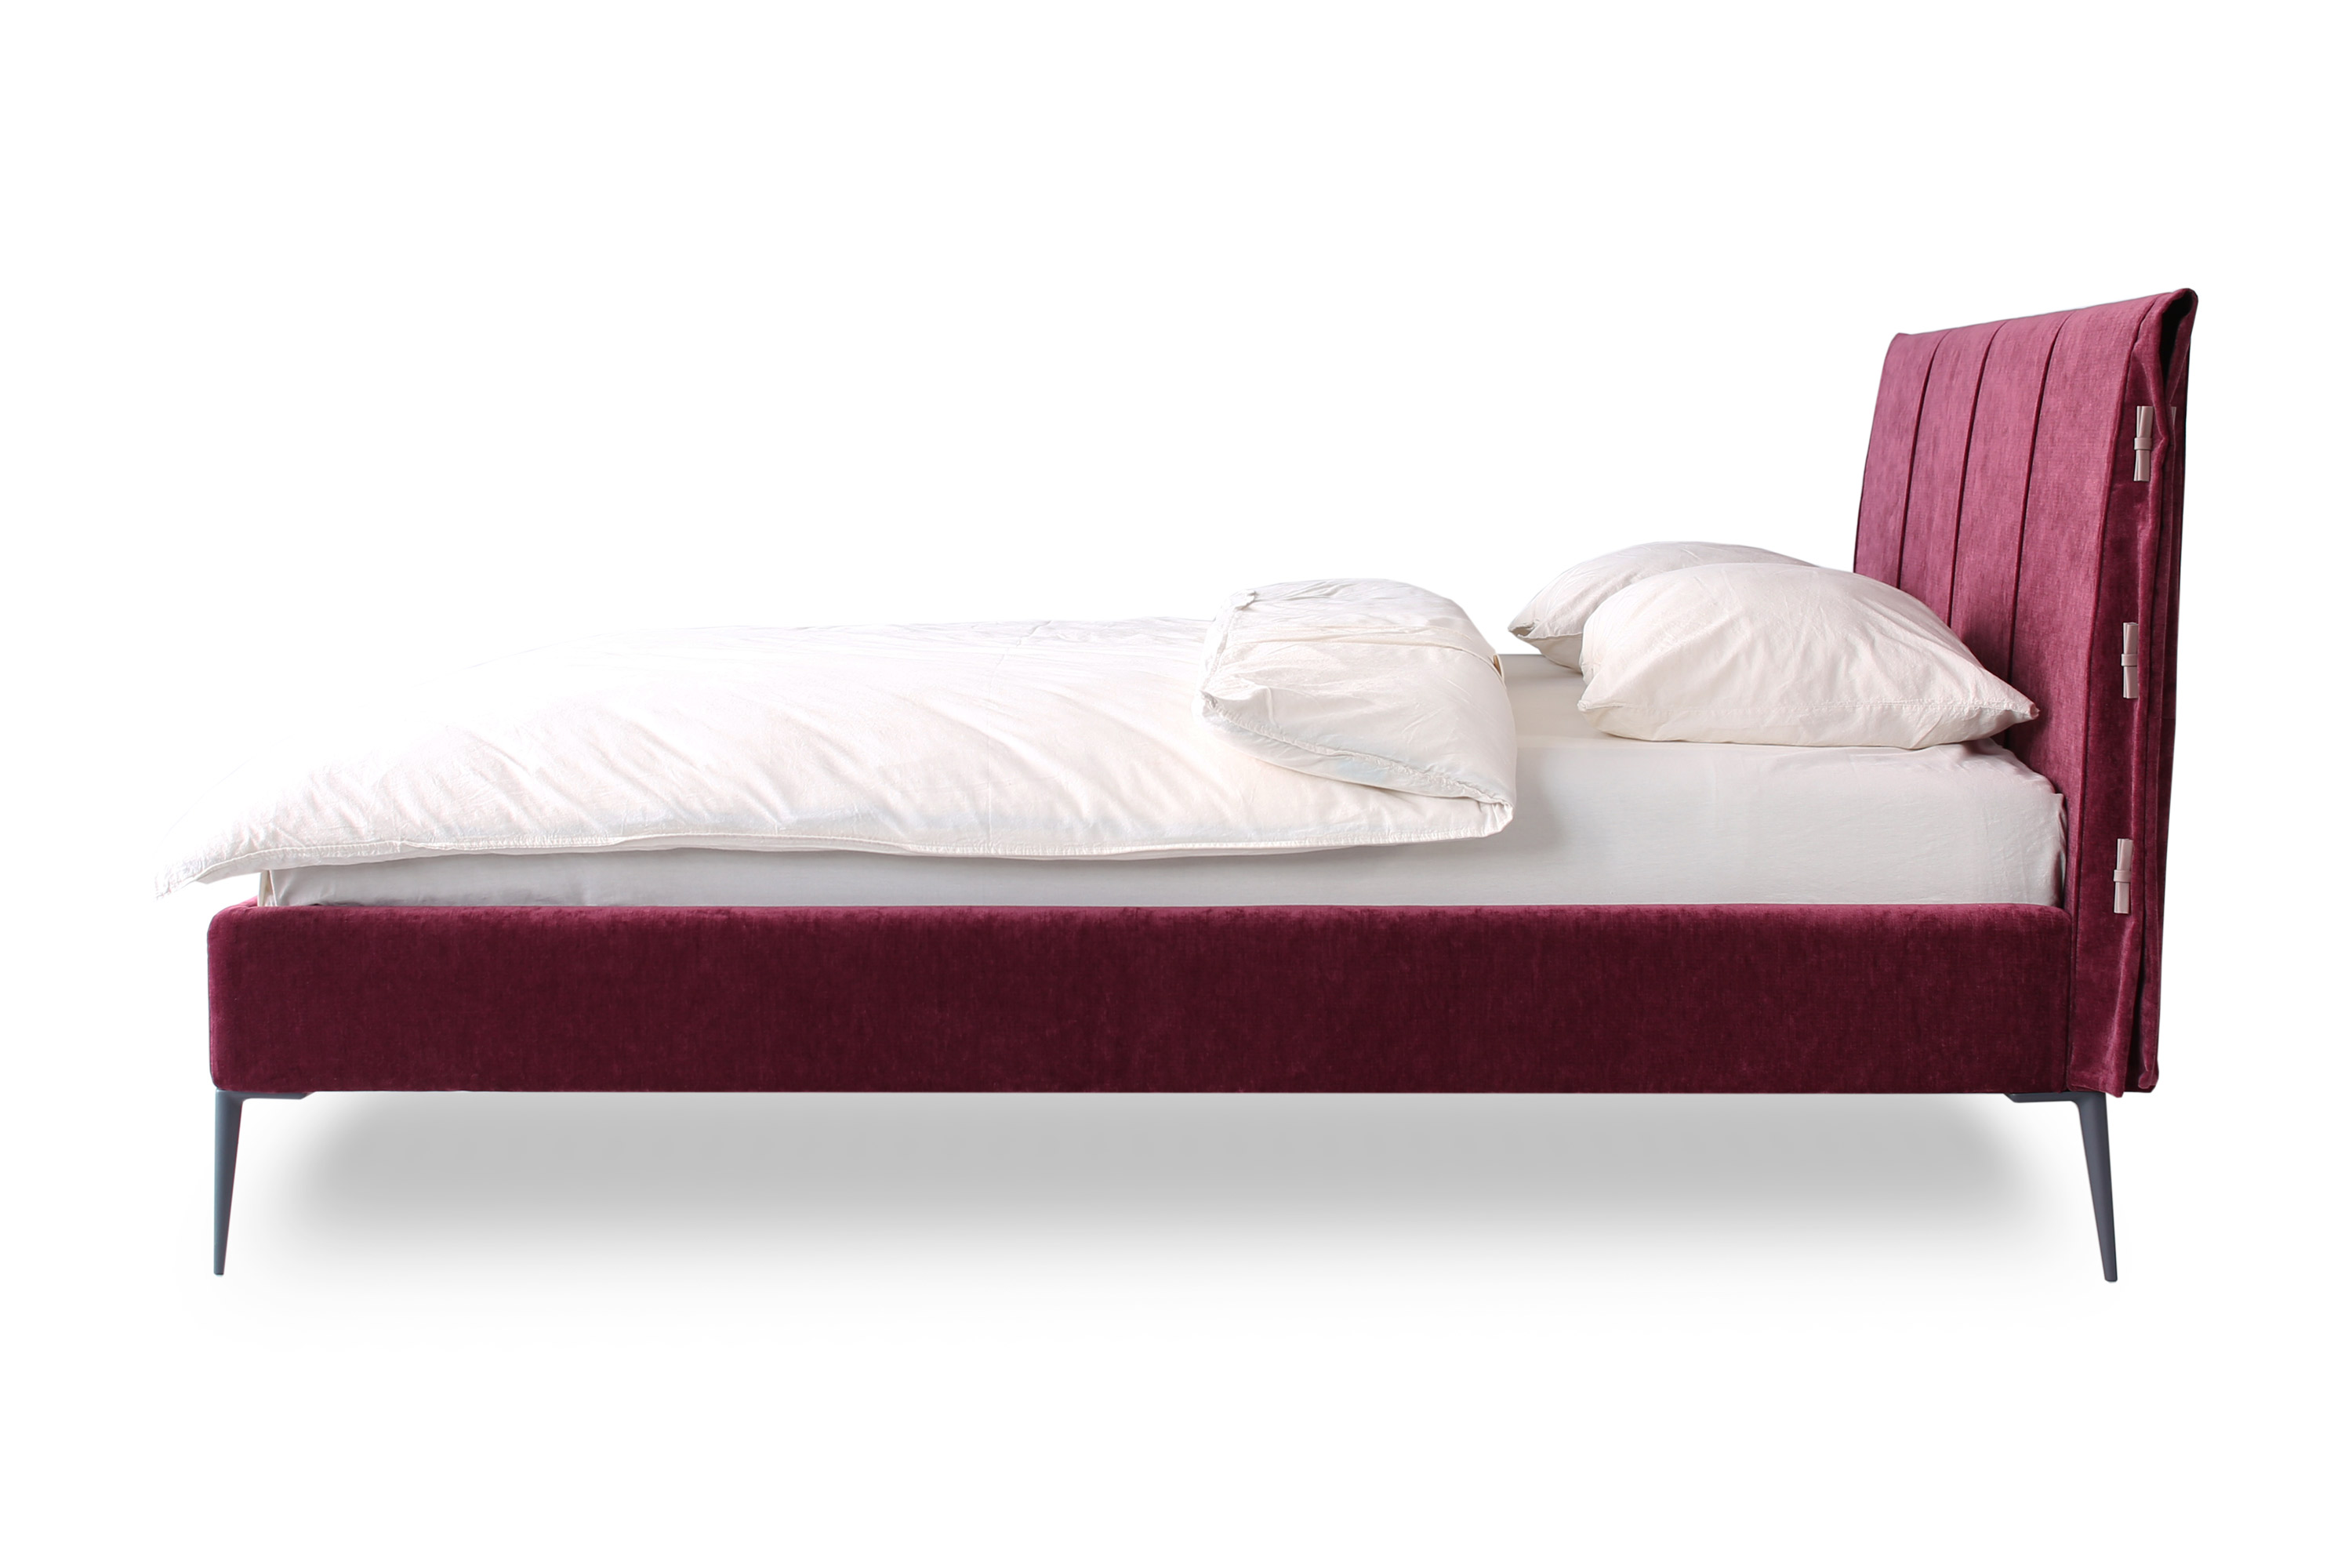 Double bed Sofia burgundy color